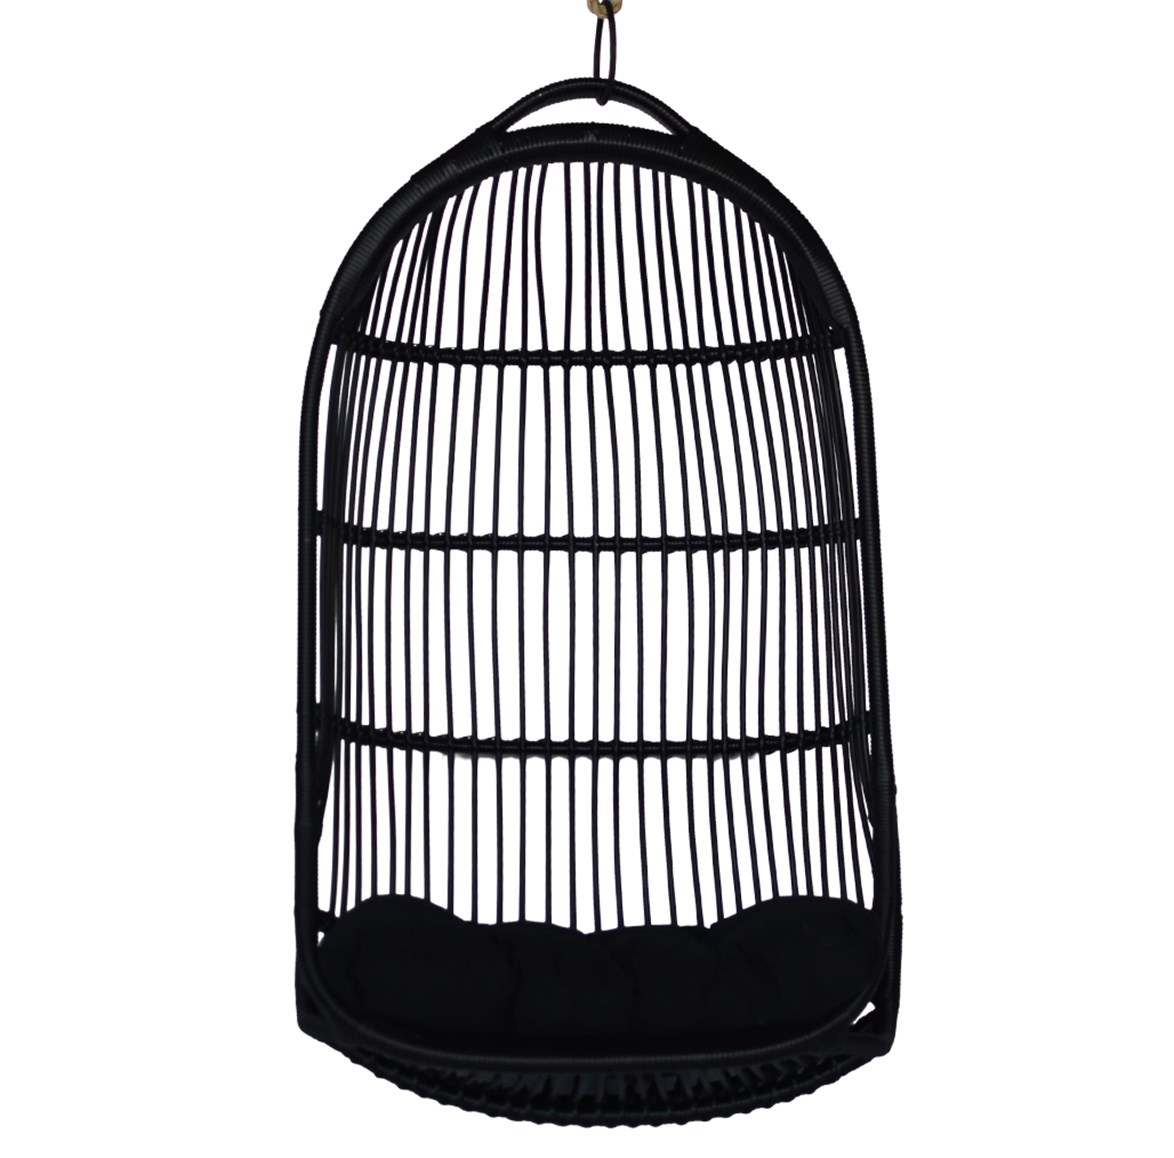 "Sunday Hanging Chair in Black, $510, [CLO Studios](https://clostudios.com.au/|target=""_blank""